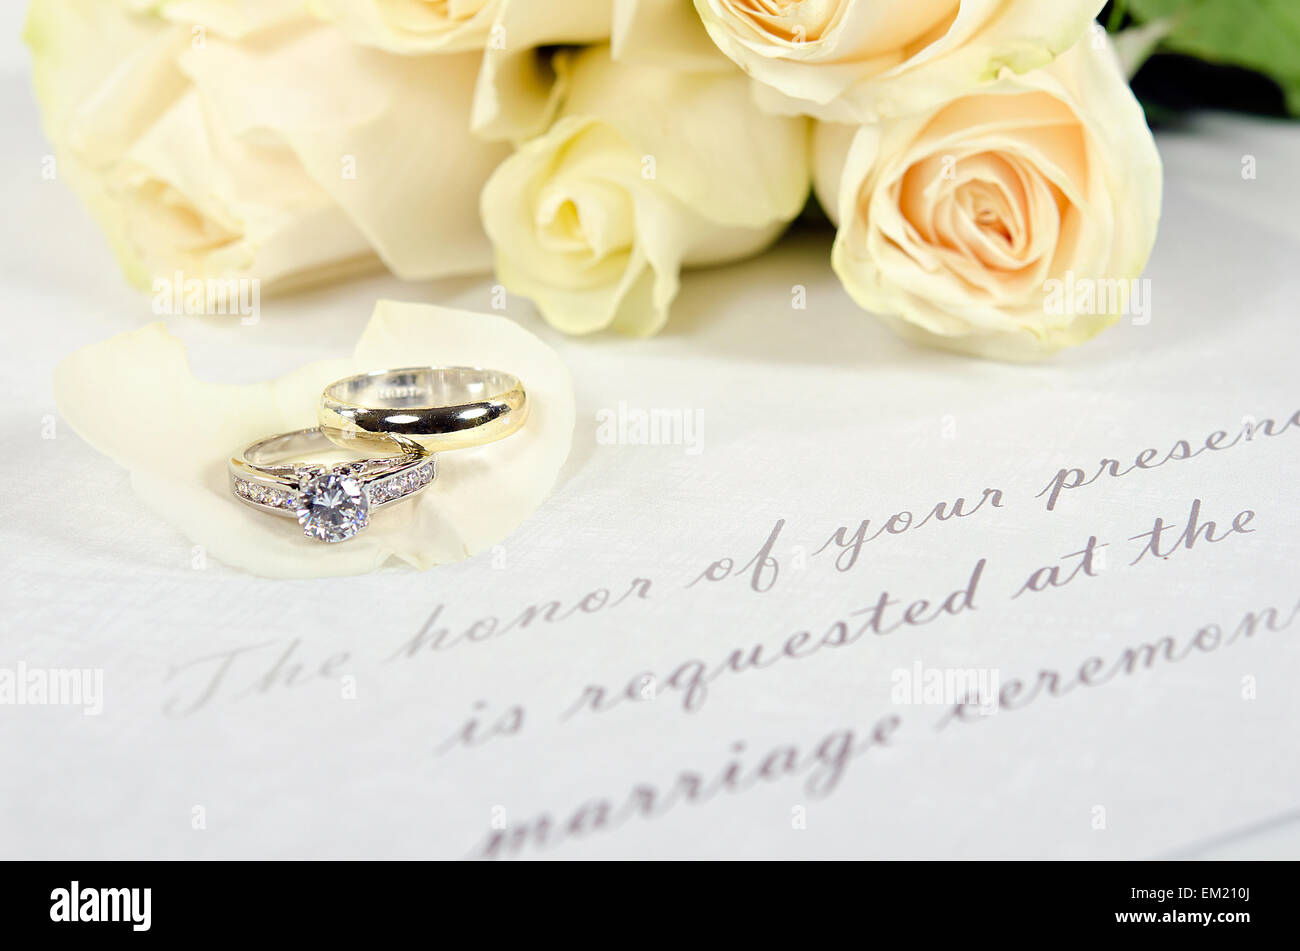 Wedding Ring Invitations - Wedding Dress Collections